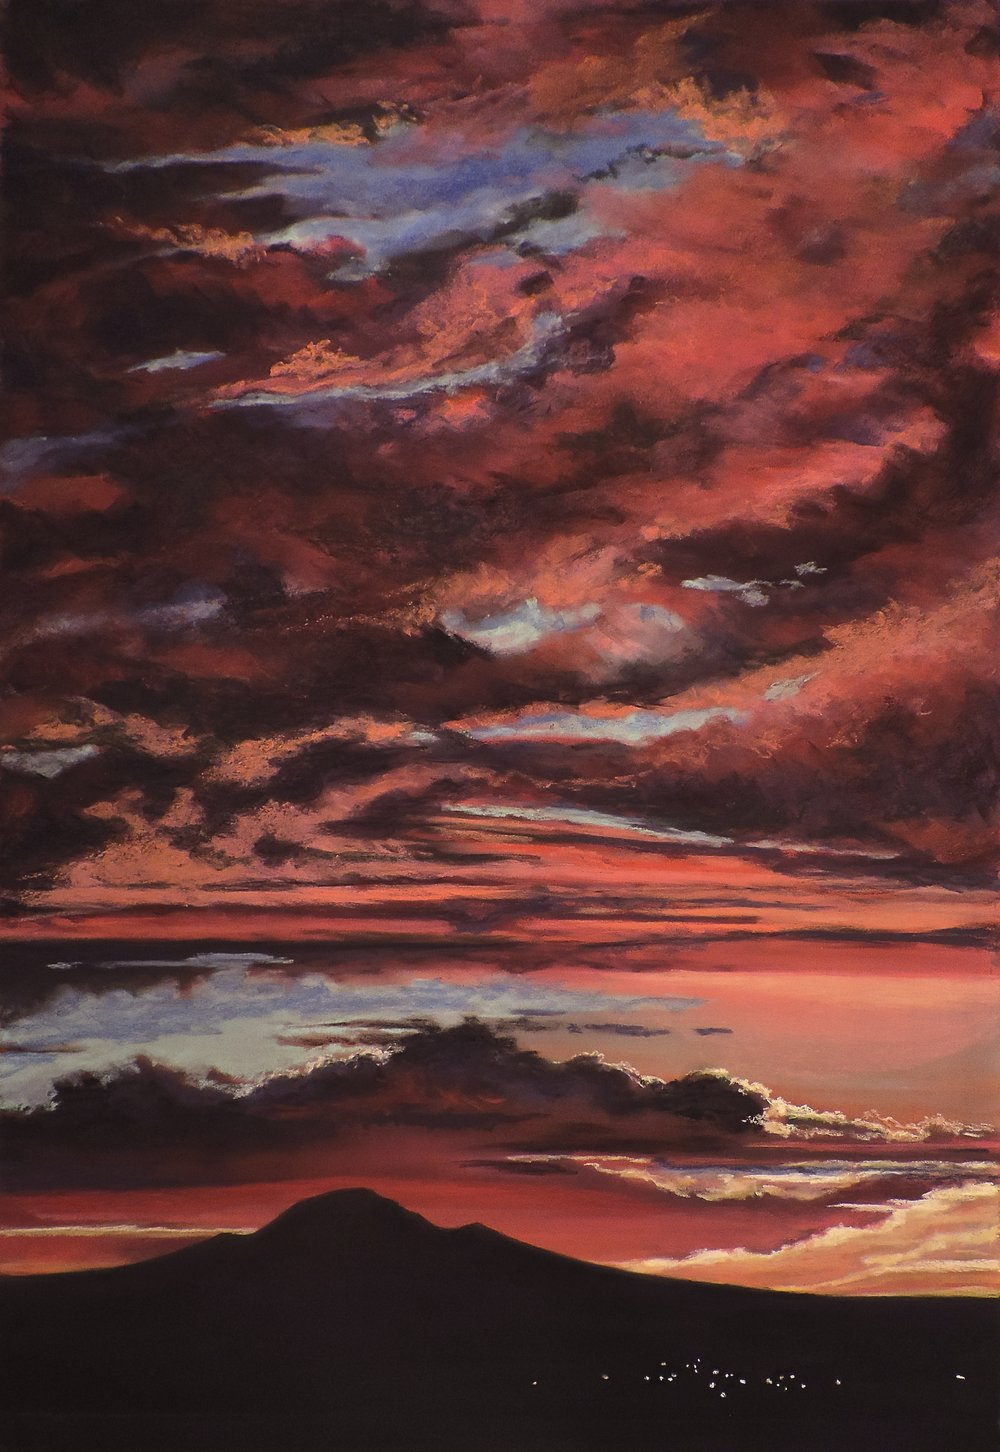 """Albuquerque fire in the sky"", Albuquerque, New Mexico  PanPastel® and traditional pastel Cheri GInsburg ©"